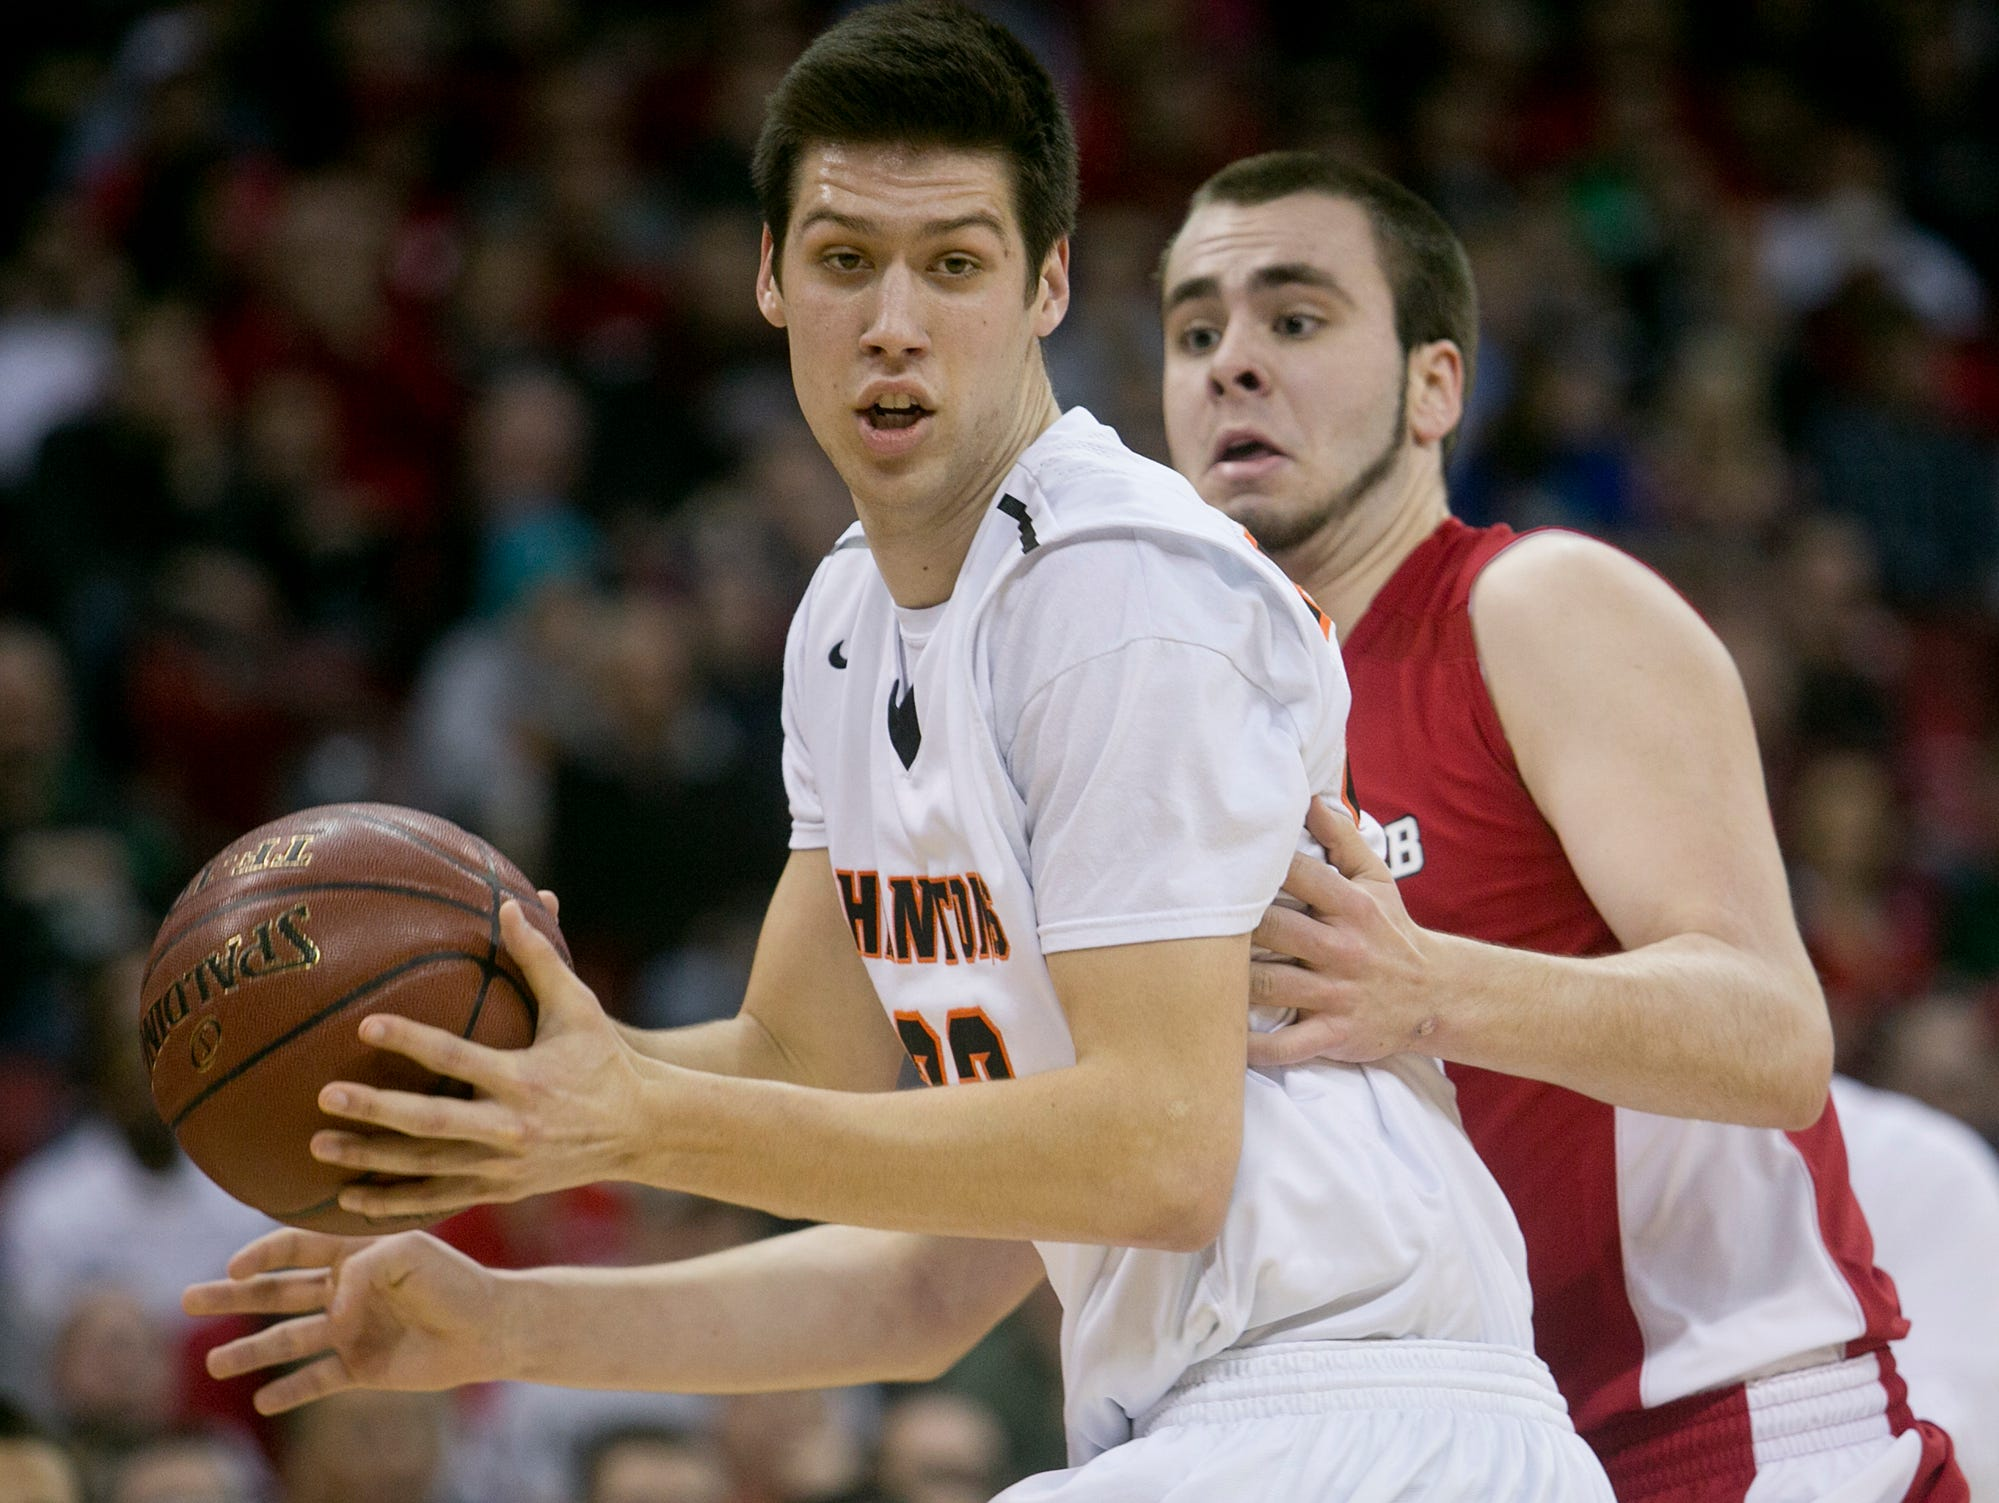 West De Pere's Cody Schwartz, left, against Mount Horeb's Terek Nesheim, right, in the Division 2 semifinal basketball game in the 100th annual WIAA State Boys Basketball Tournament at the Kohl Center on Friday, March 20, 2015, in Madison, Wis.